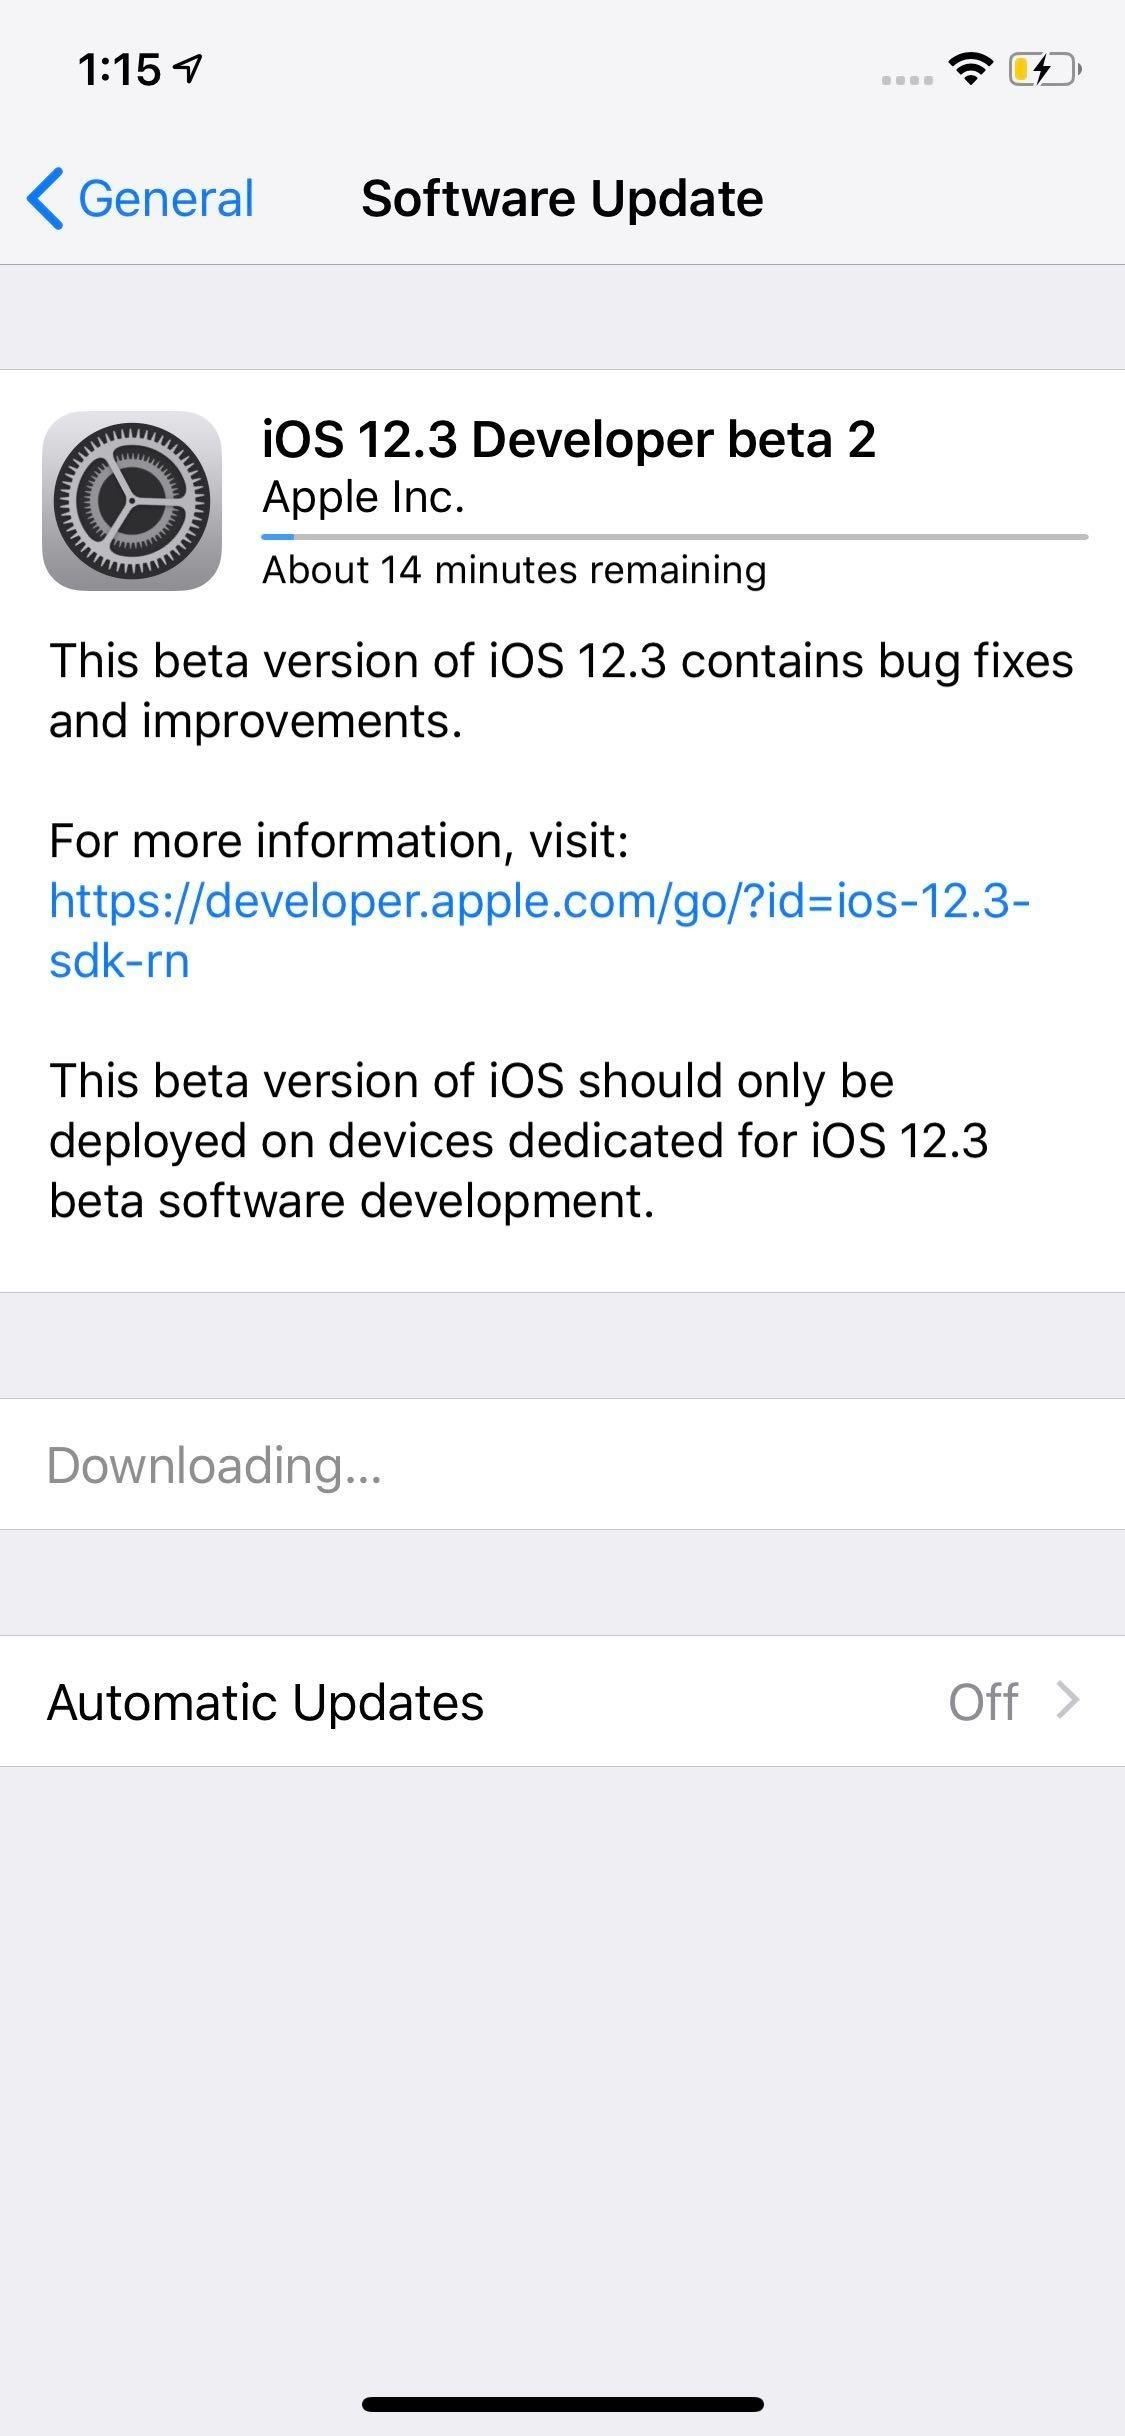 Apple has just released iOS 12.3 Developer Beta 2 Today, features for dates and times